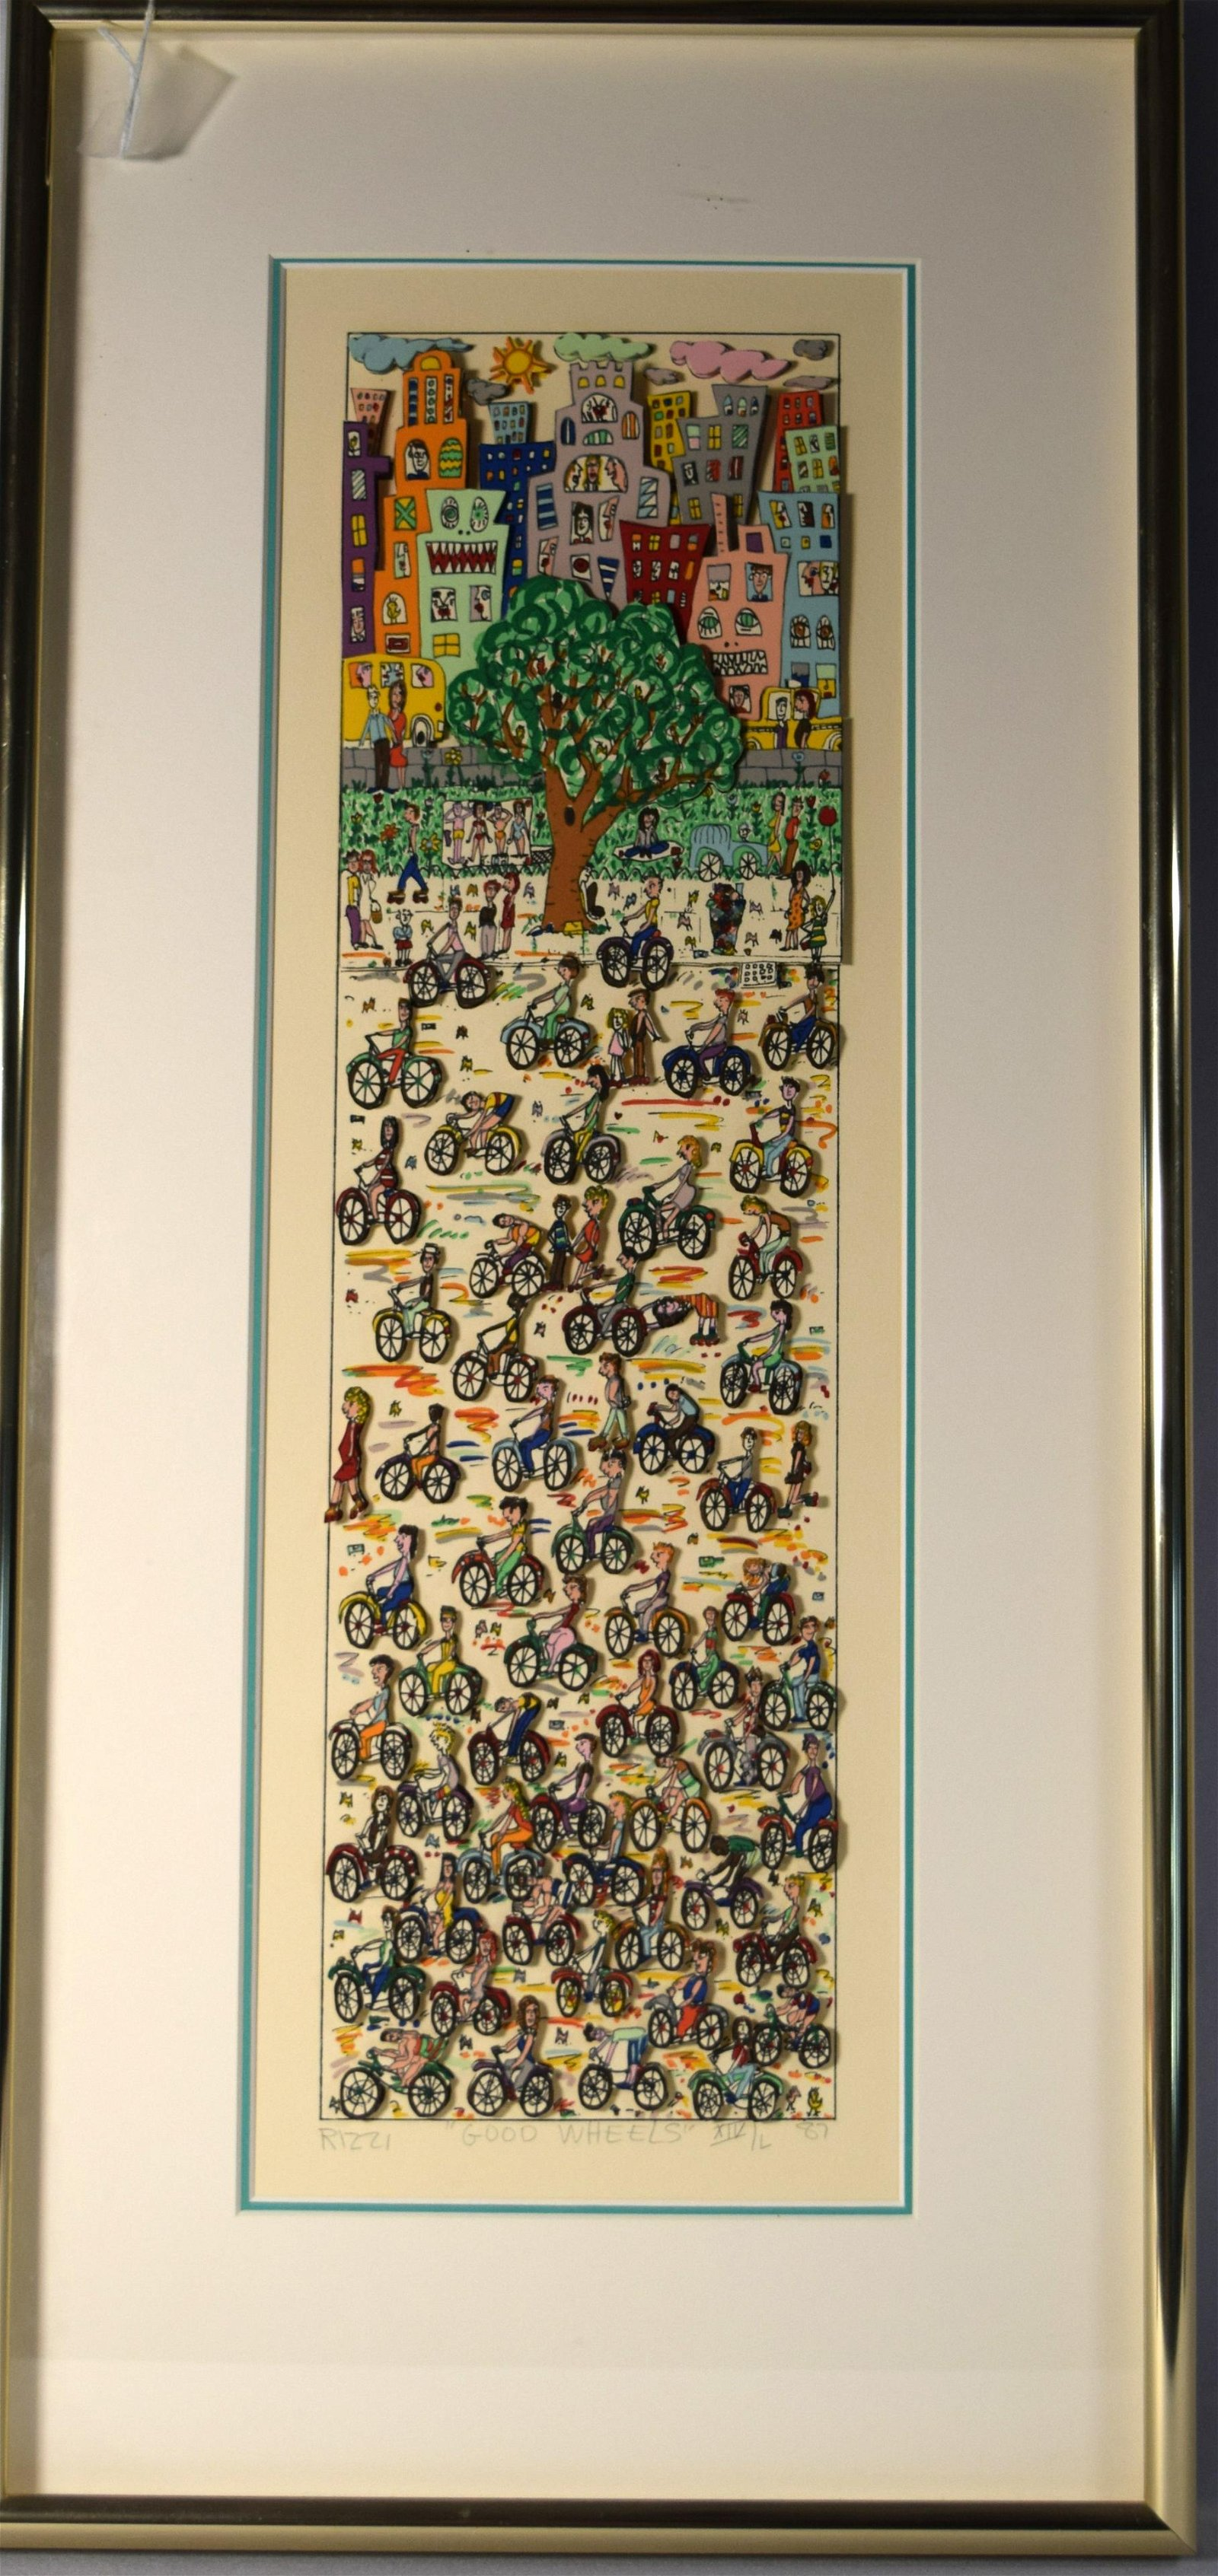 JAMES RIZZI 3-D LITHOGRAPH: